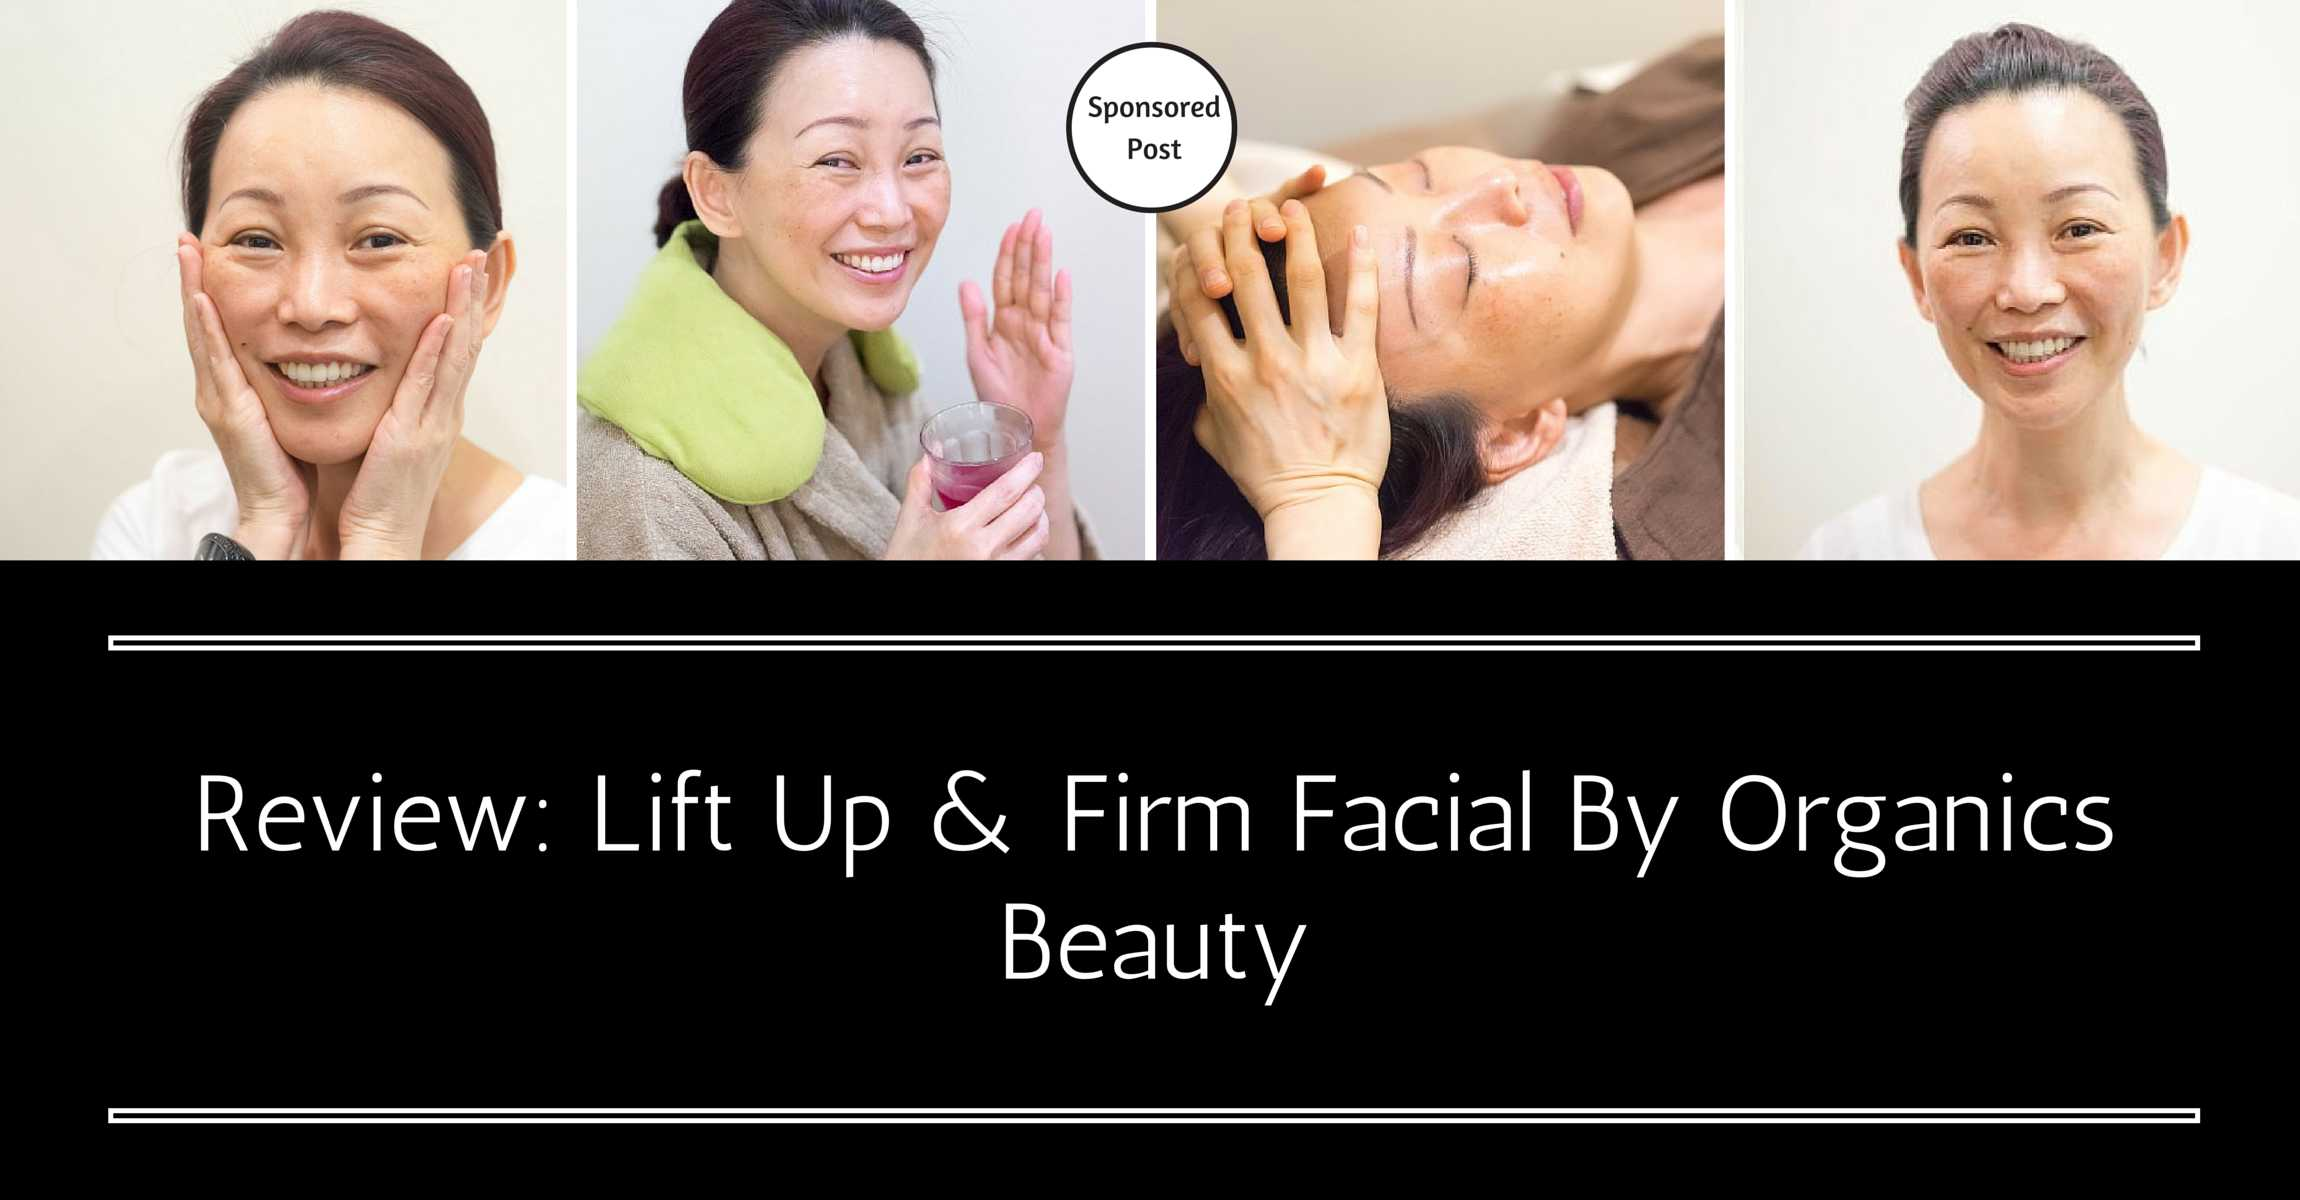 A Natural Alternative to Botox: Lift Up and Firm Facial by Organics Beauty